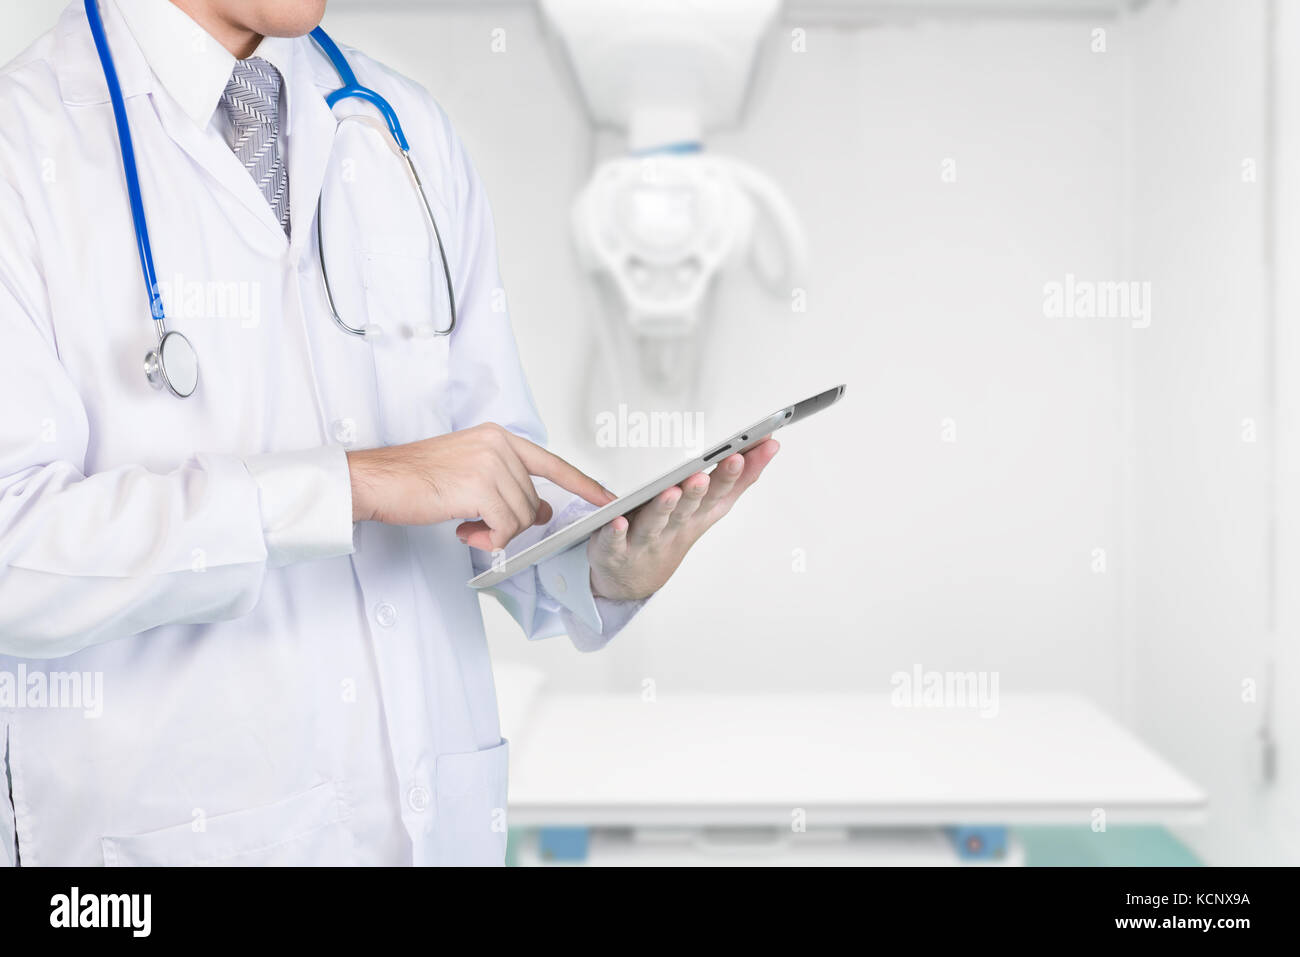 Doctor using digital tablet check result in x-ray room. Concepts of 4.0 technology communication. copy space. - Stock Image